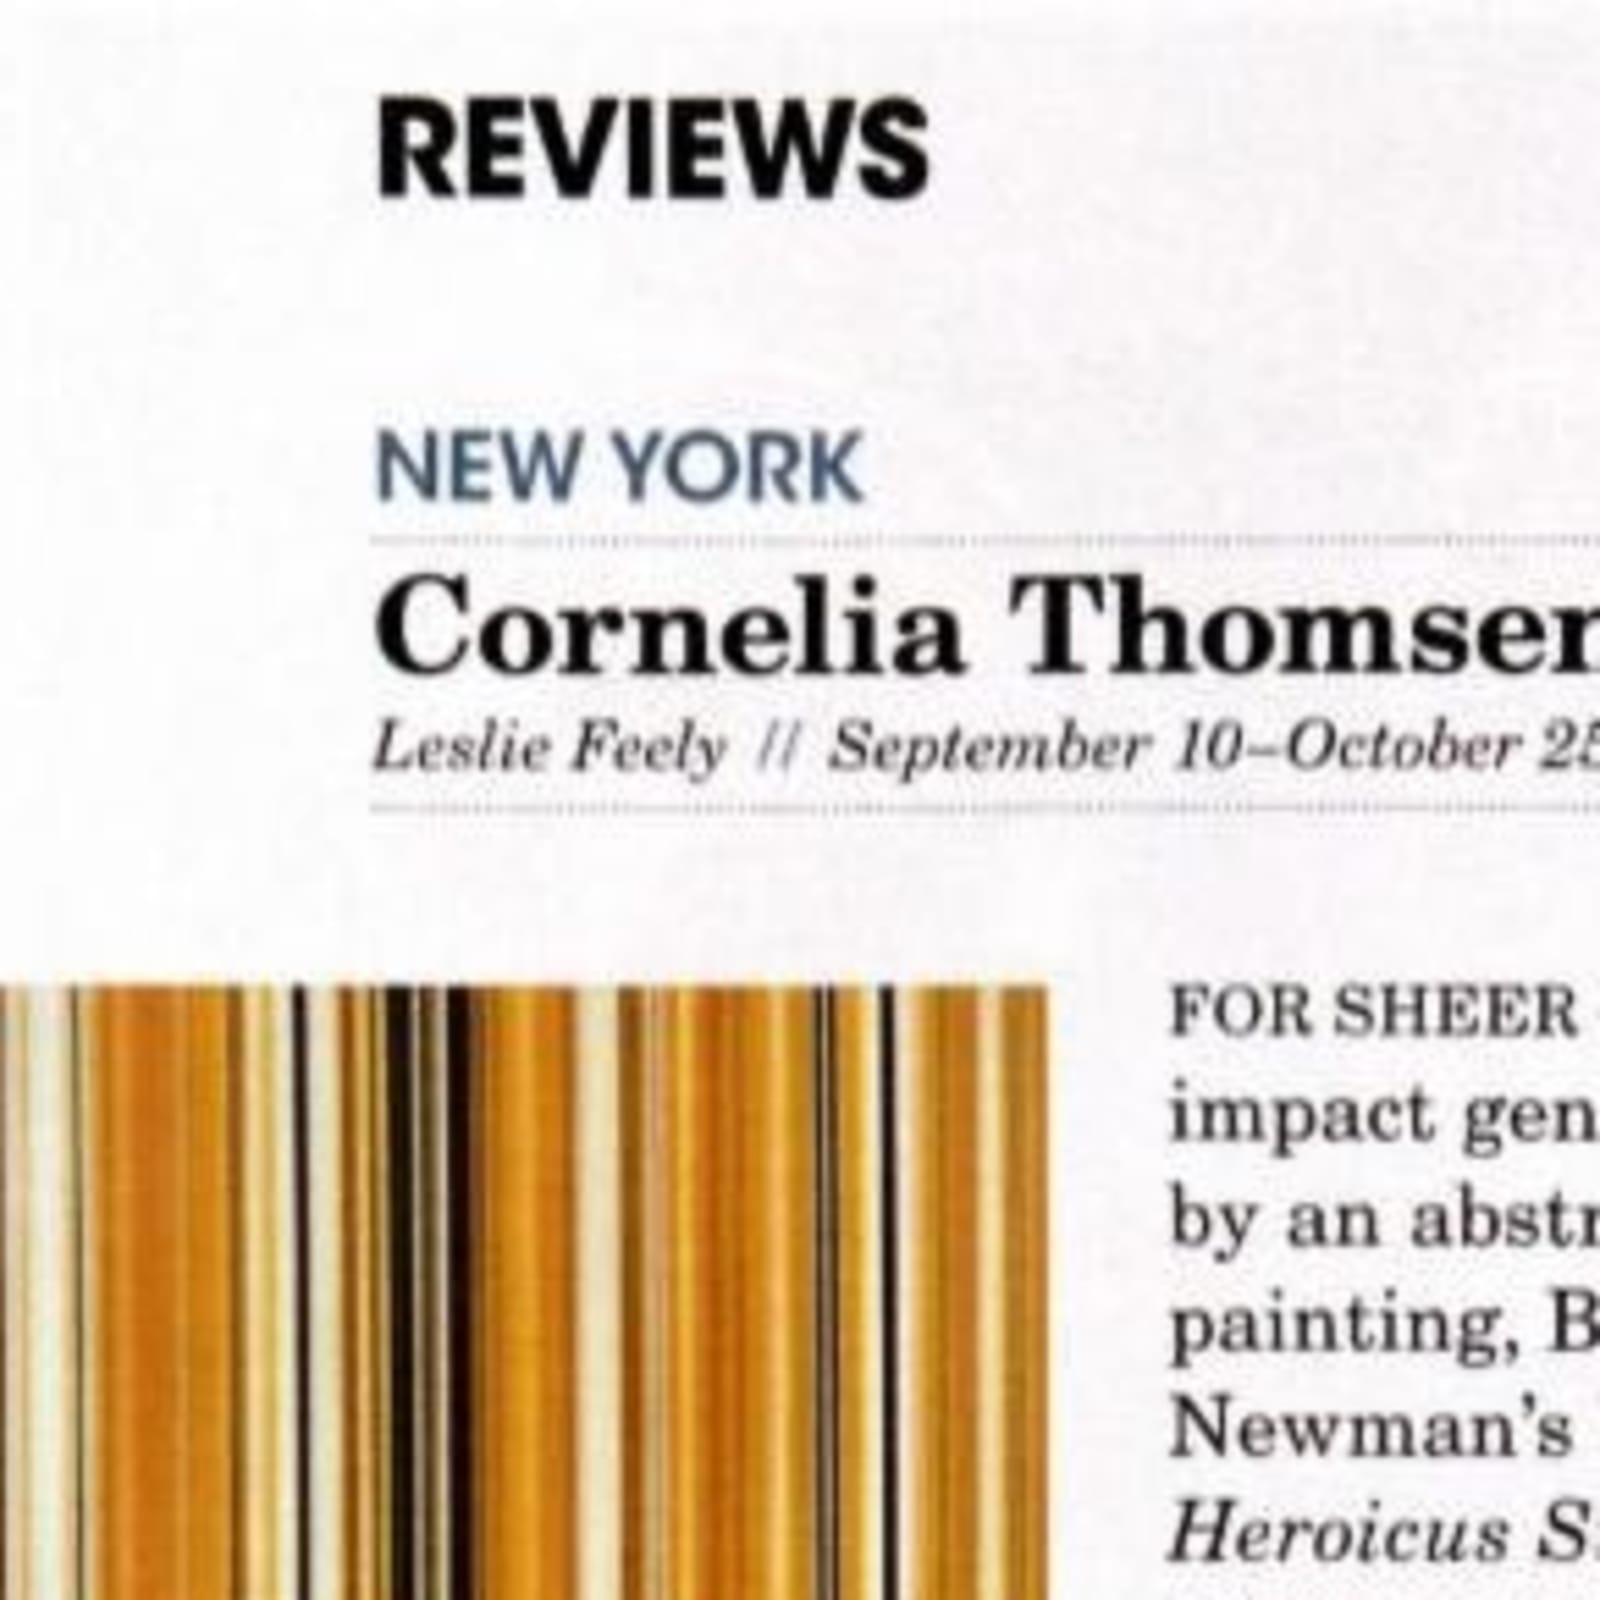 Review in MODERN PAINTERS magazine